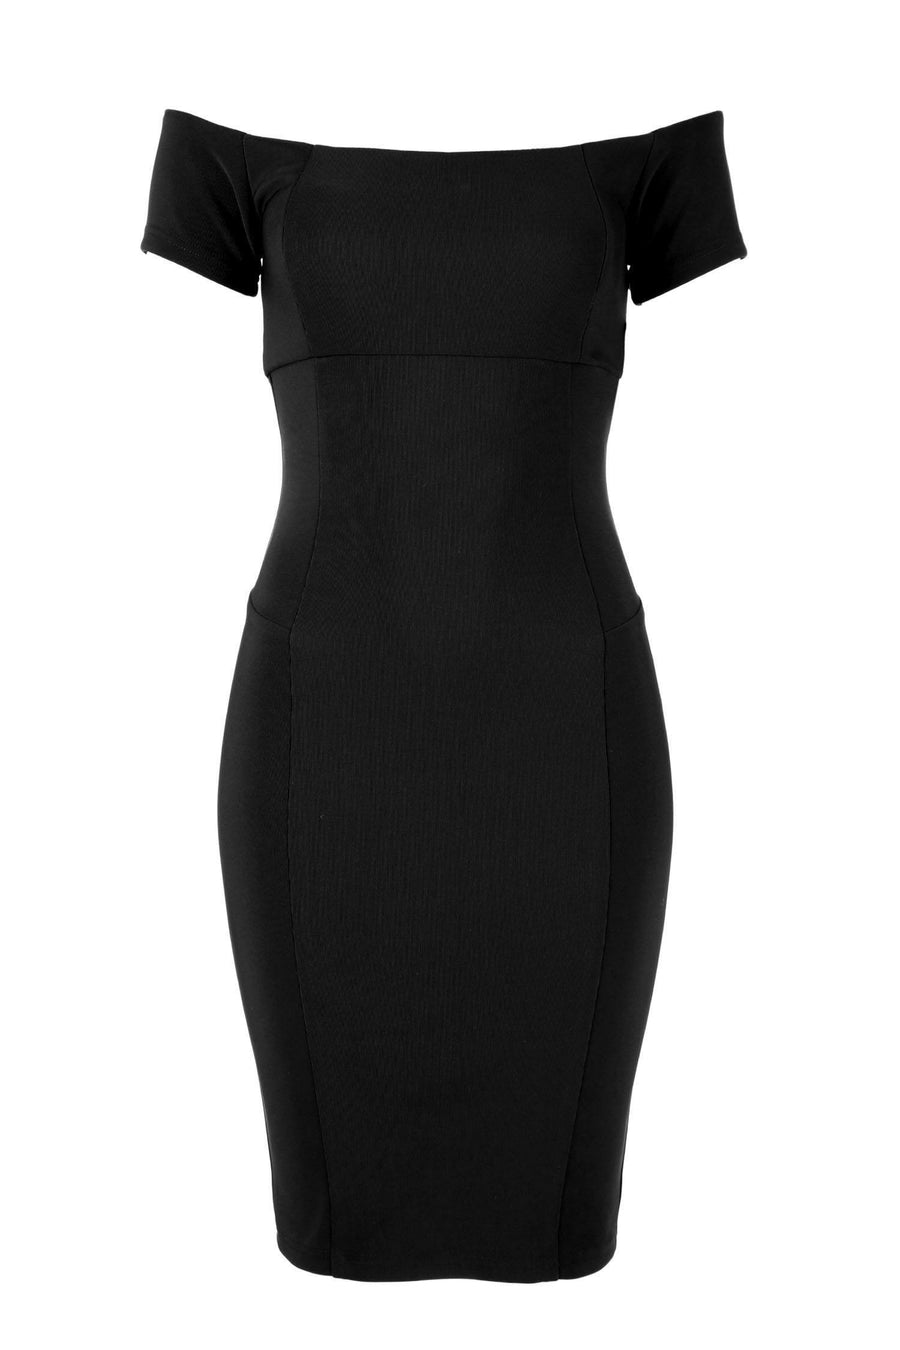 Peta Zip Back Dress by Quba